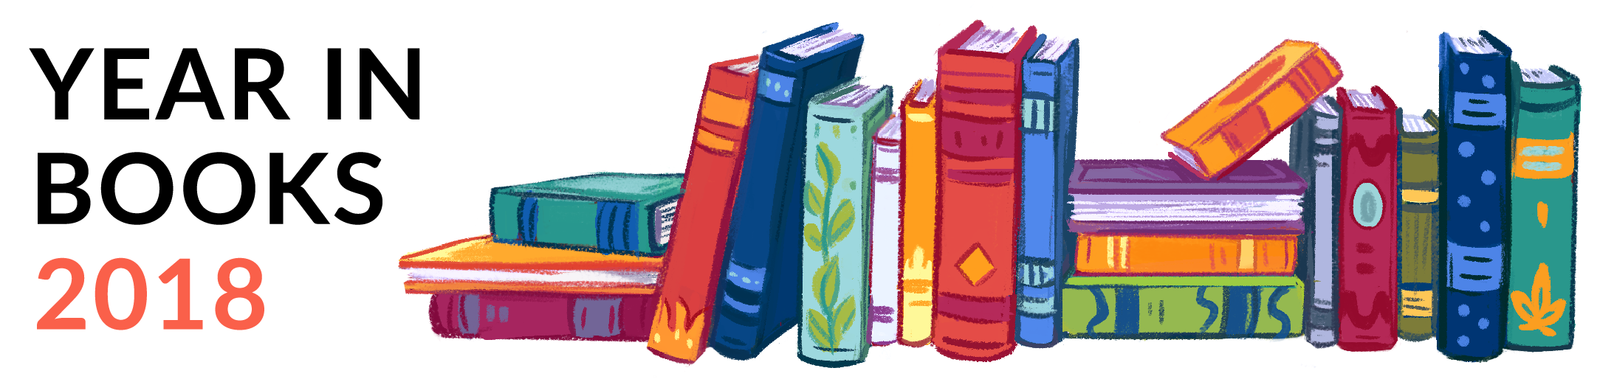 Angelique's year in books